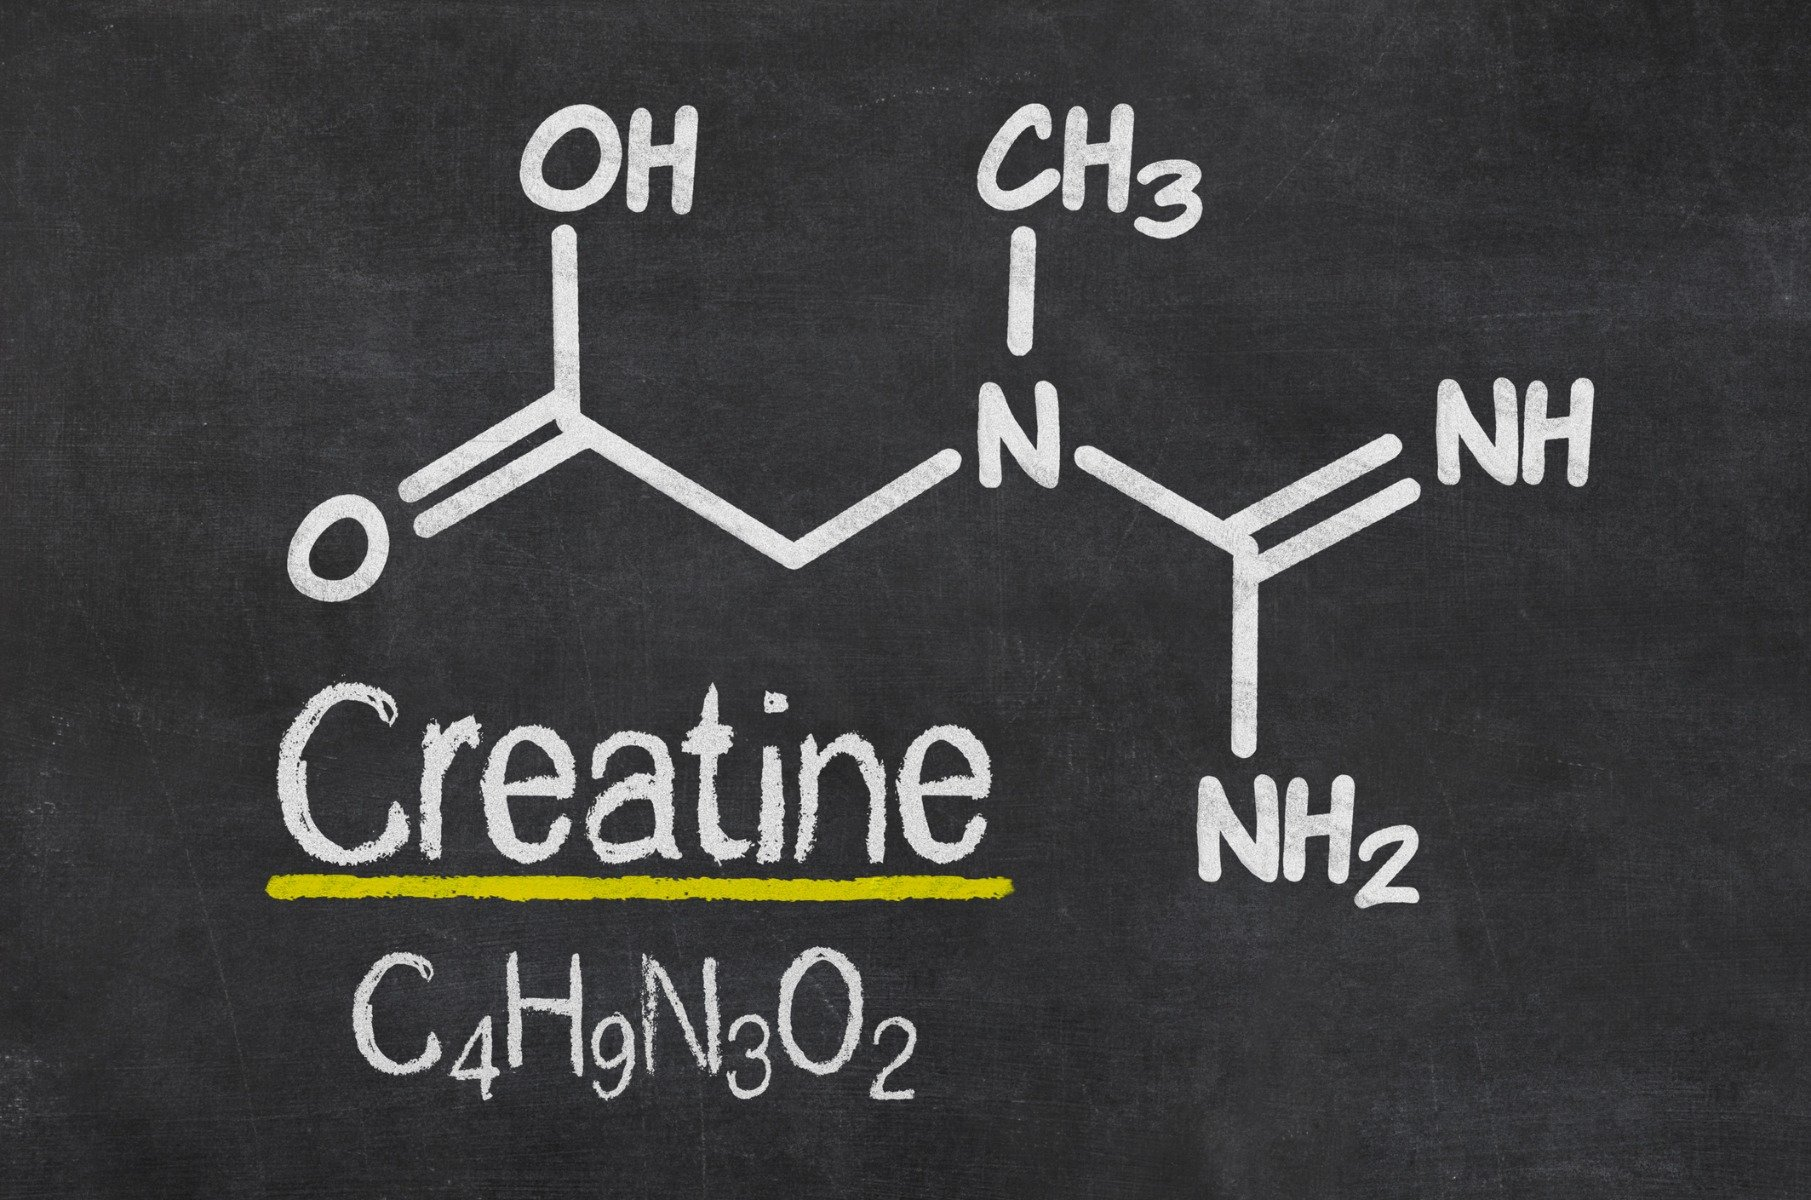 Everything you need to know about creatine and its forms